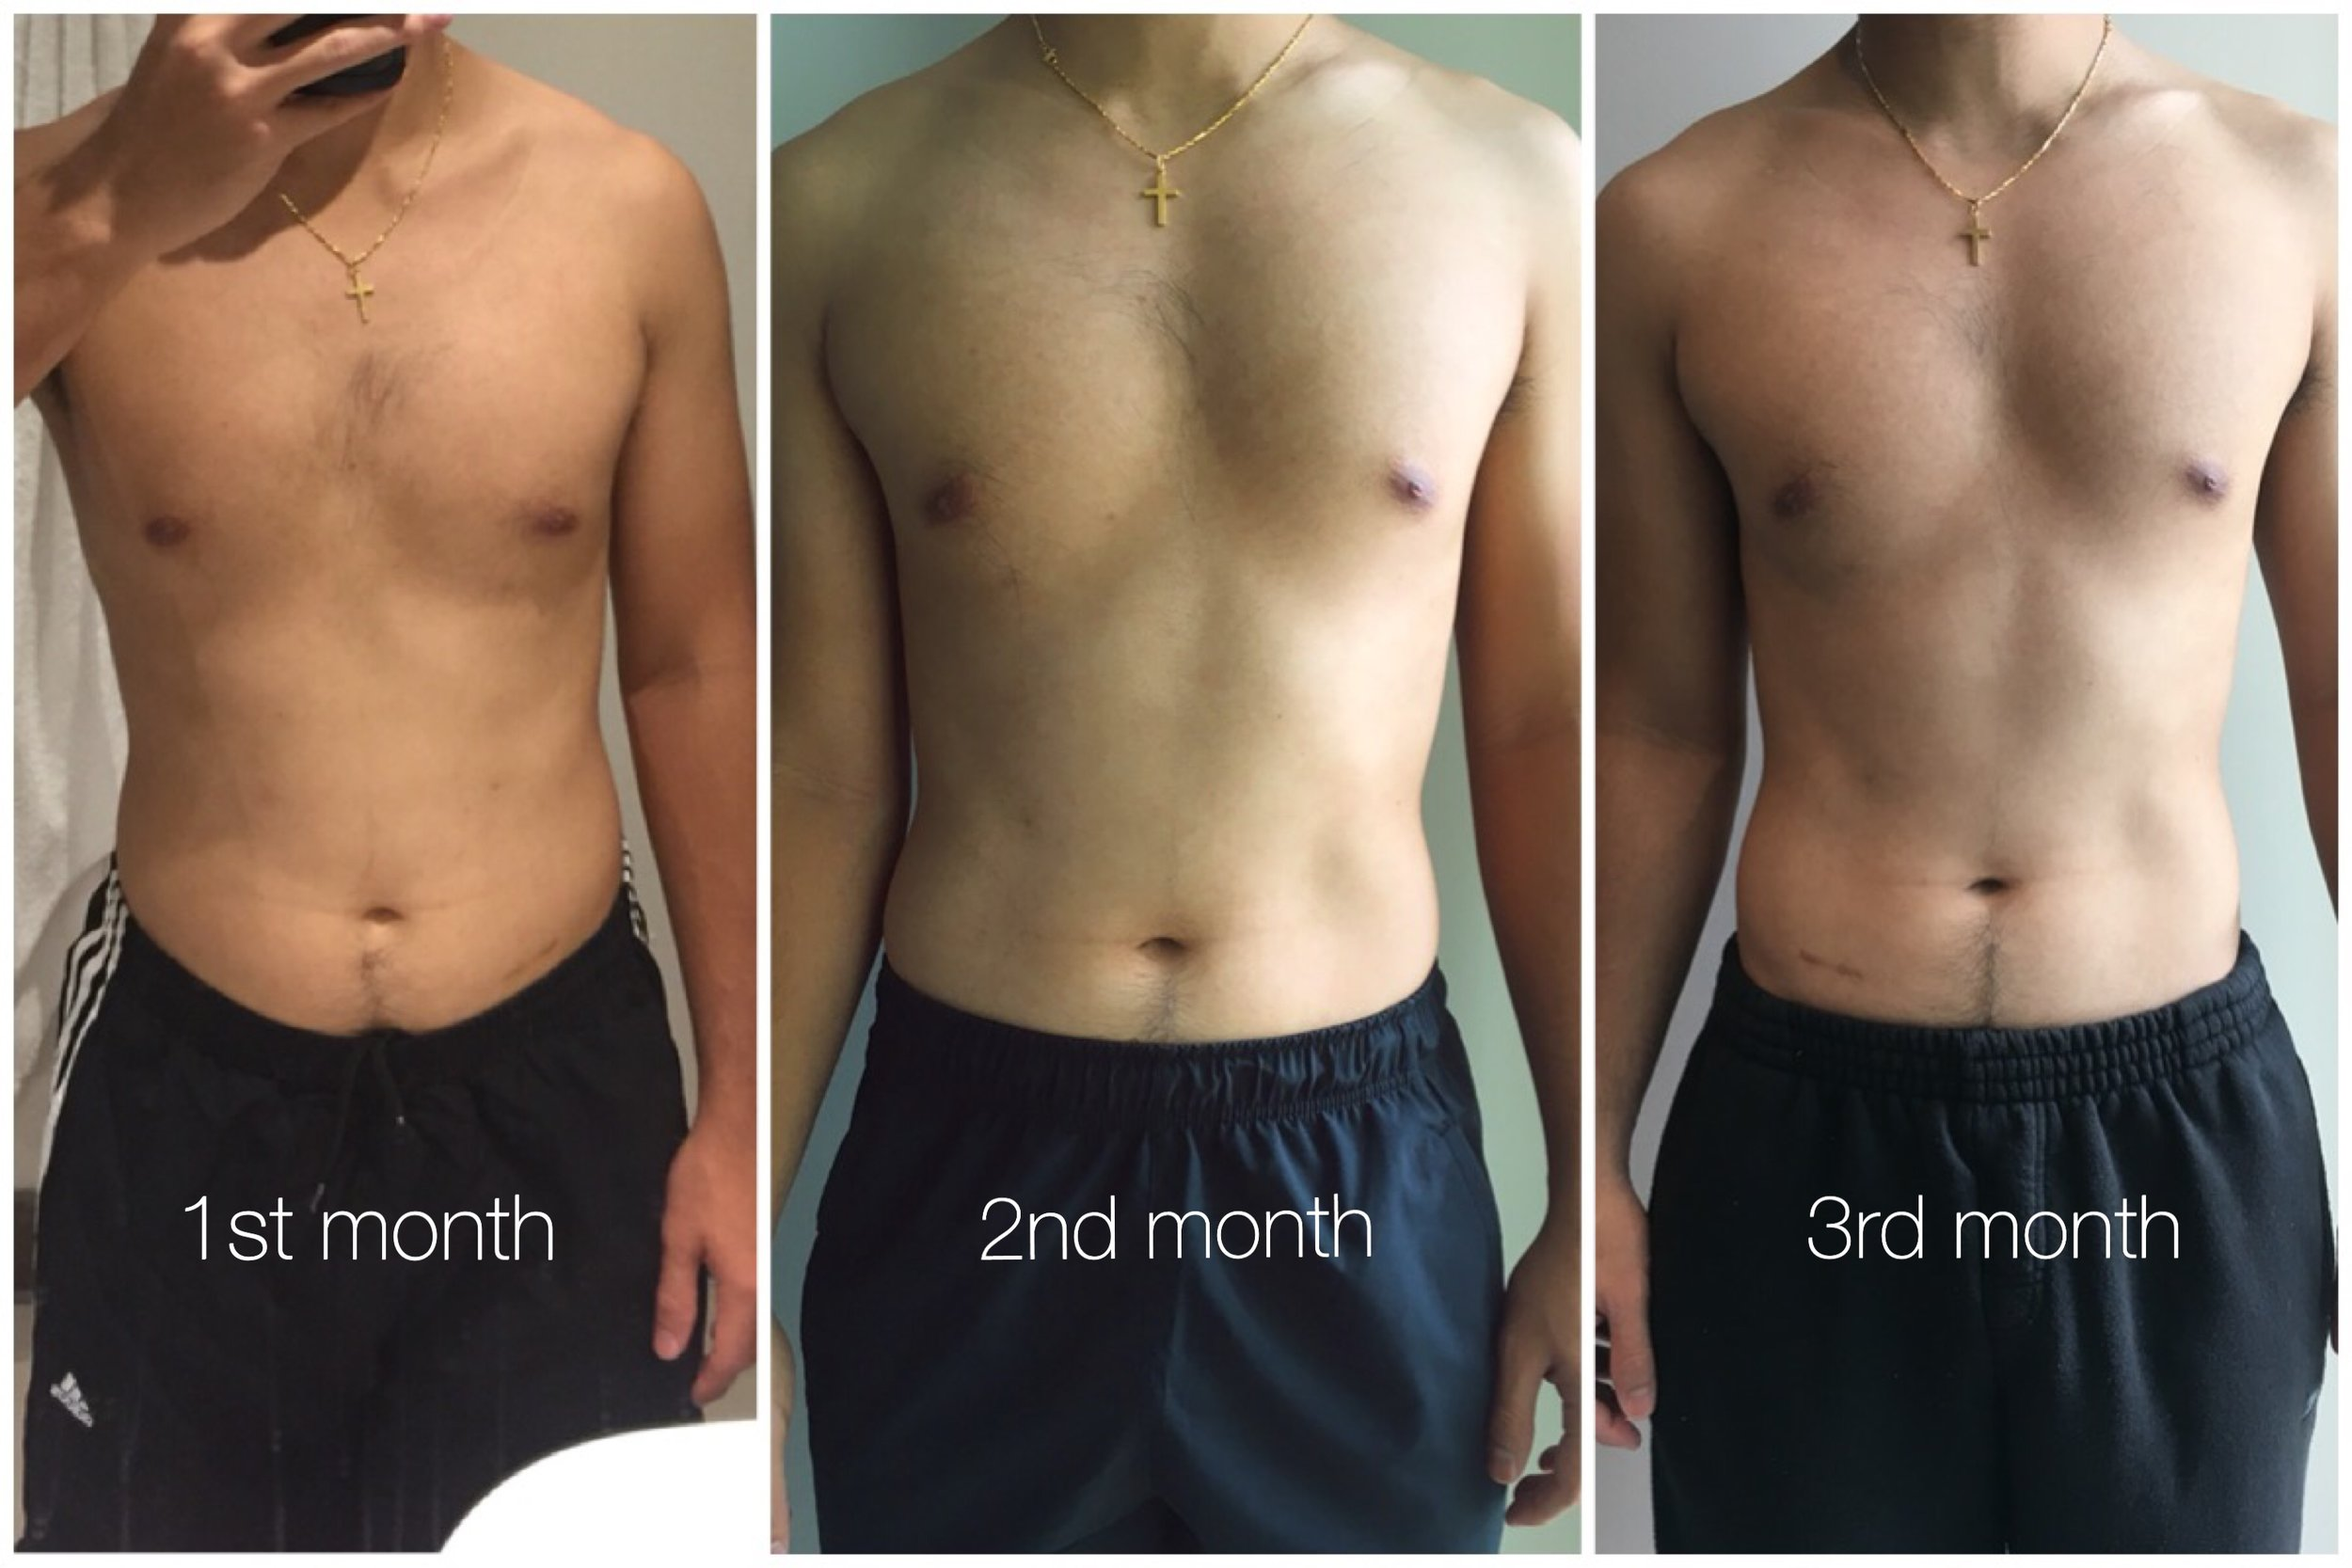 1st month                 2nd month                 3rd month